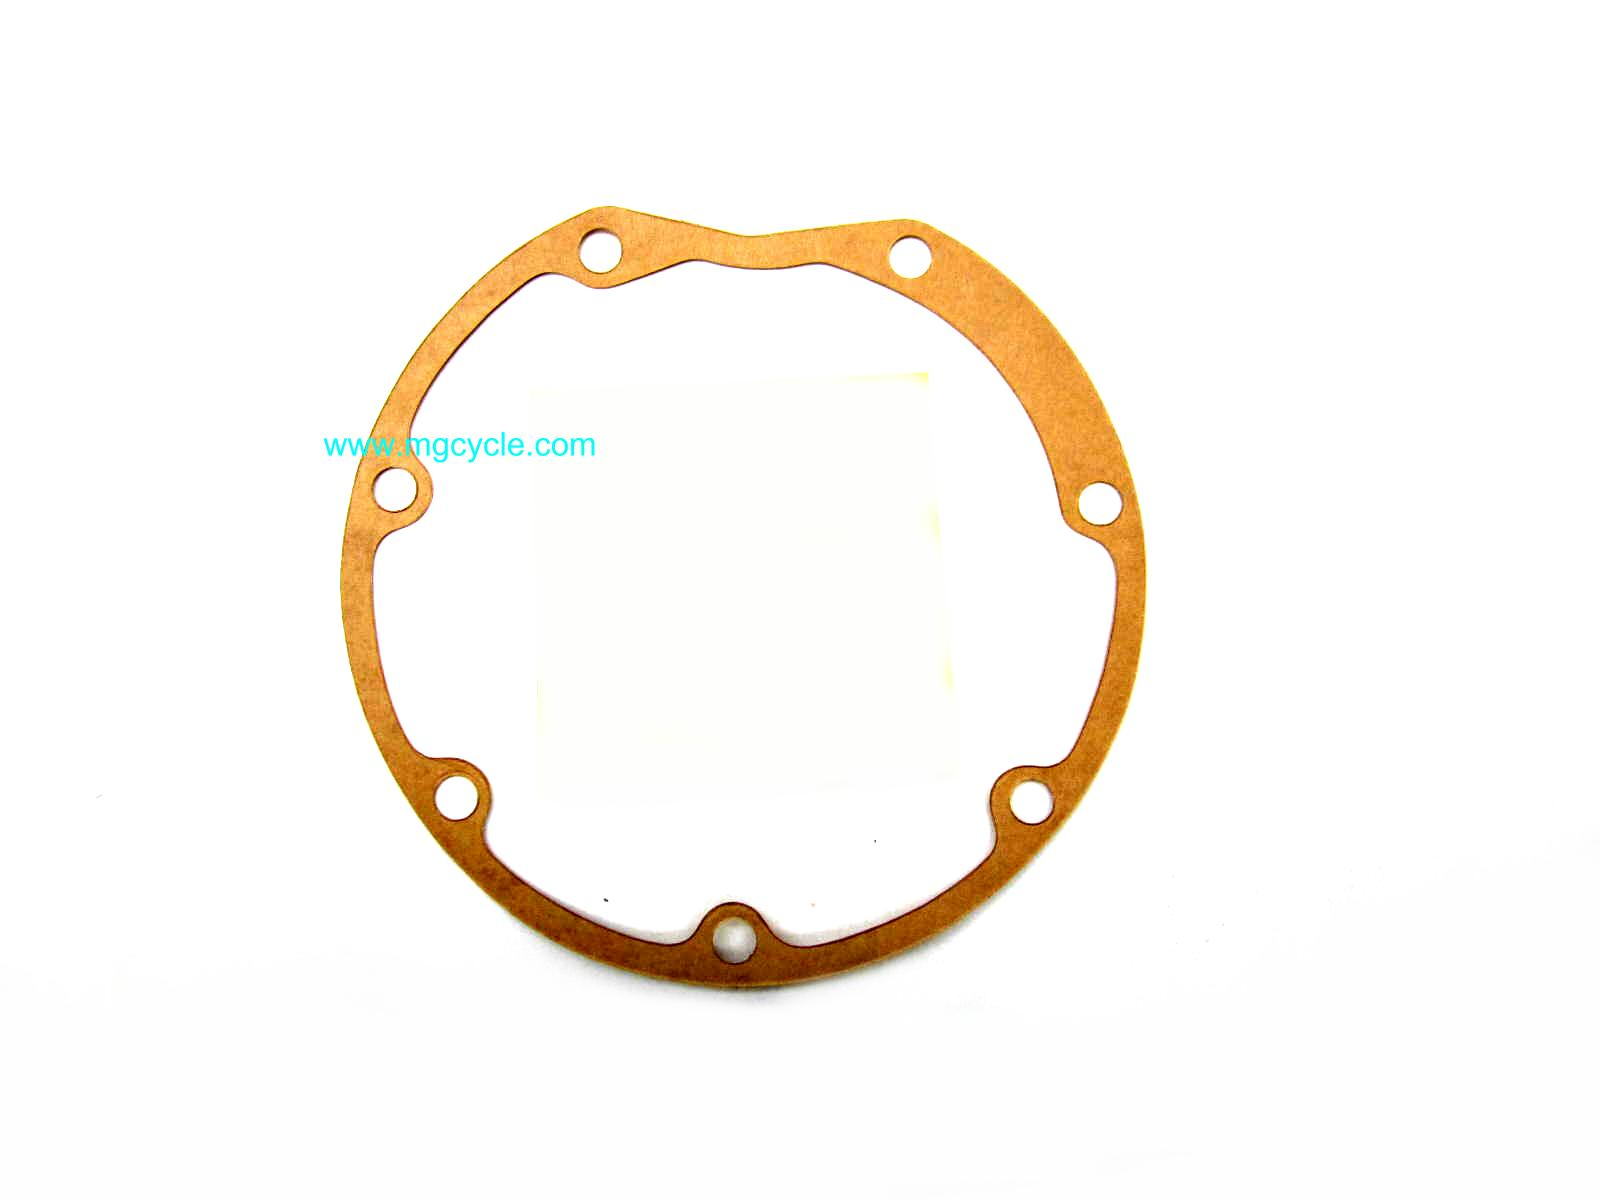 Rear drive flange gasket small blocks GU19350700